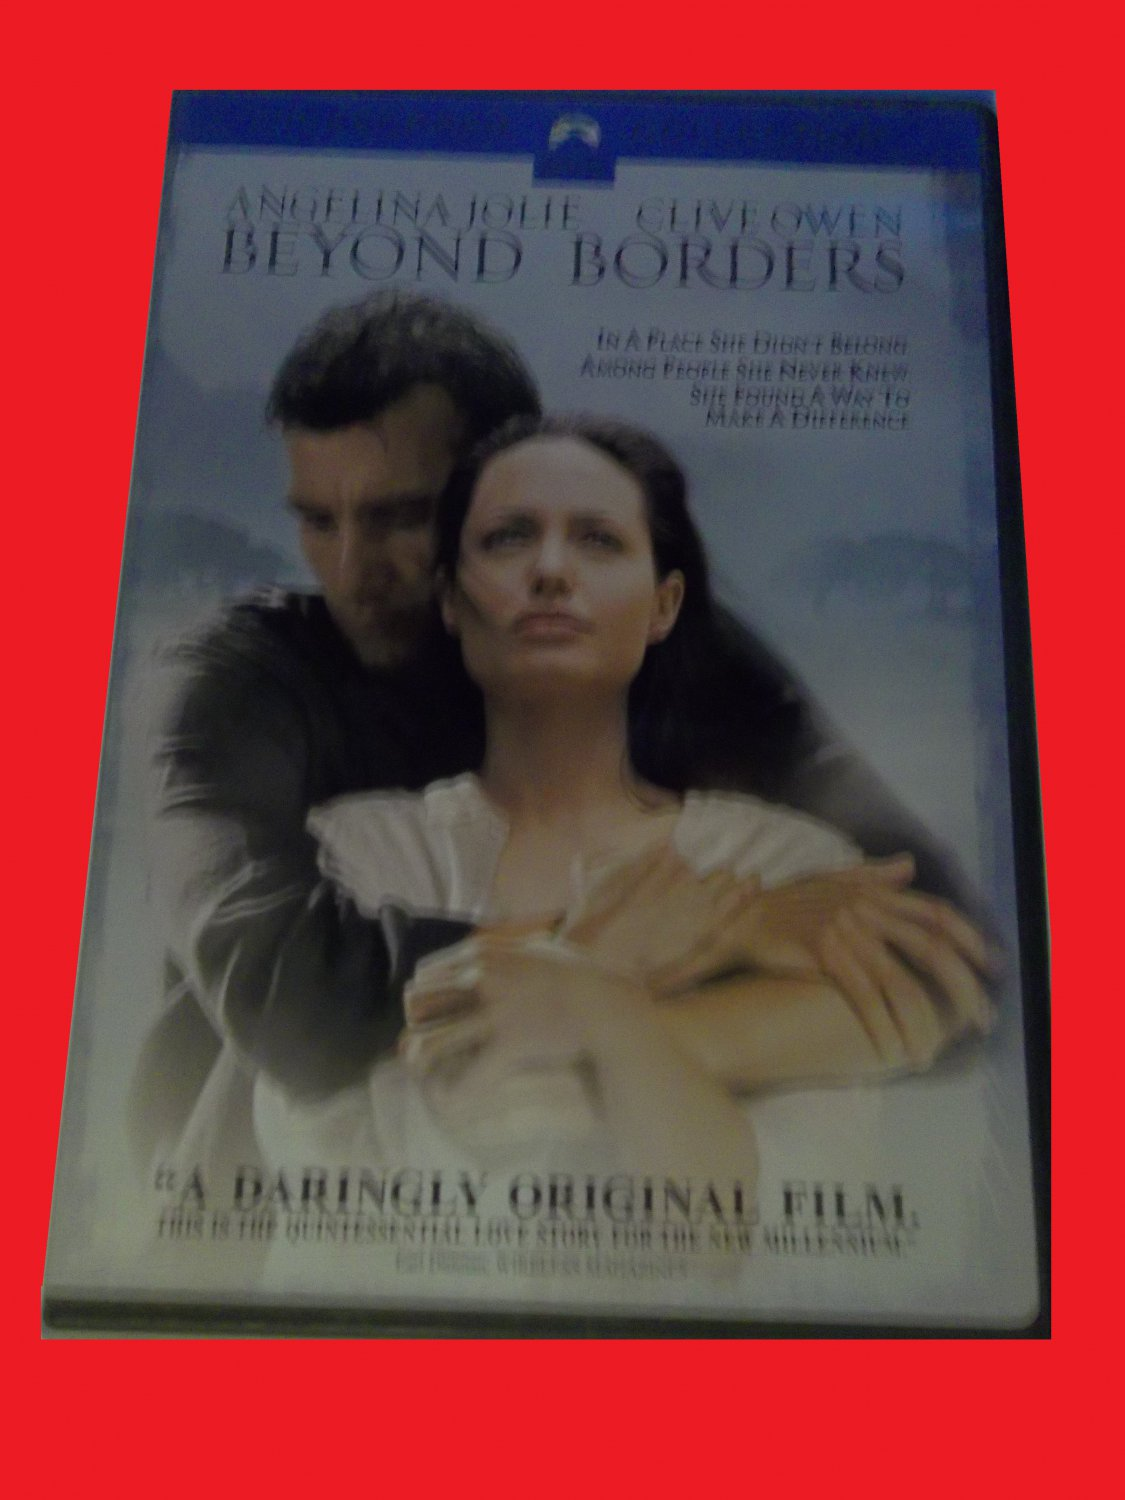 BEYOND BORDERS (FREE DVD, FAST SHIPPING!) ANGELINA JOLIE, CLIVE OWENS (ROMANTIC ADVENTURE)